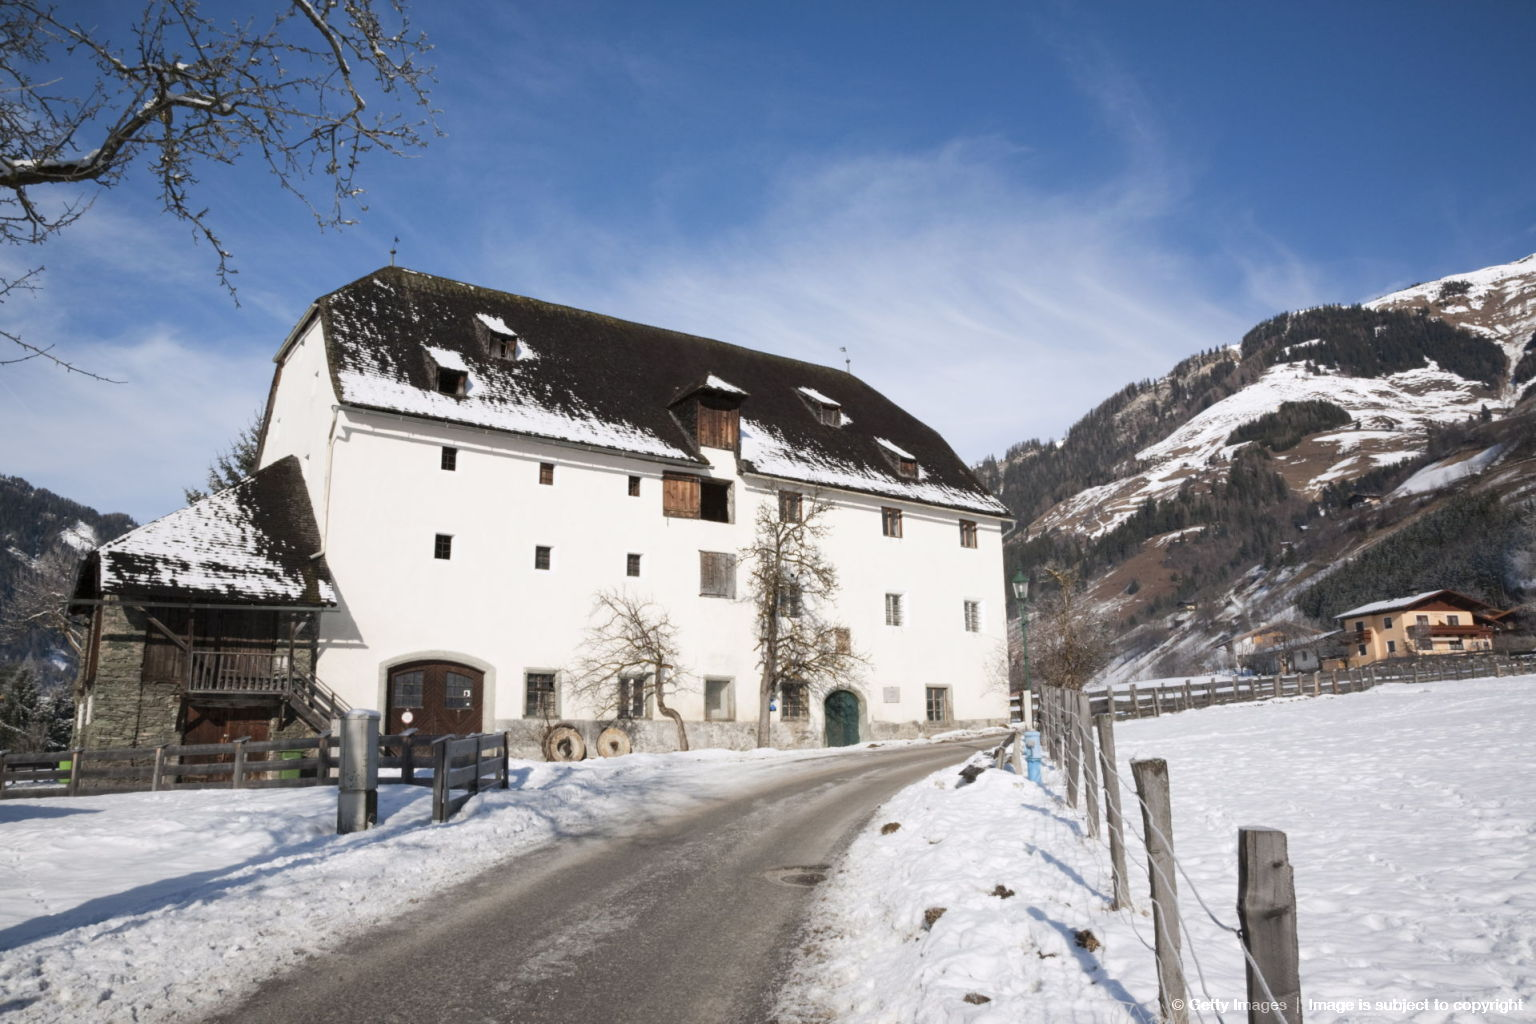 A 16th century historic building Furstenmuhle former bakery and mill dating from 1565, Rauris, Austria, Europe